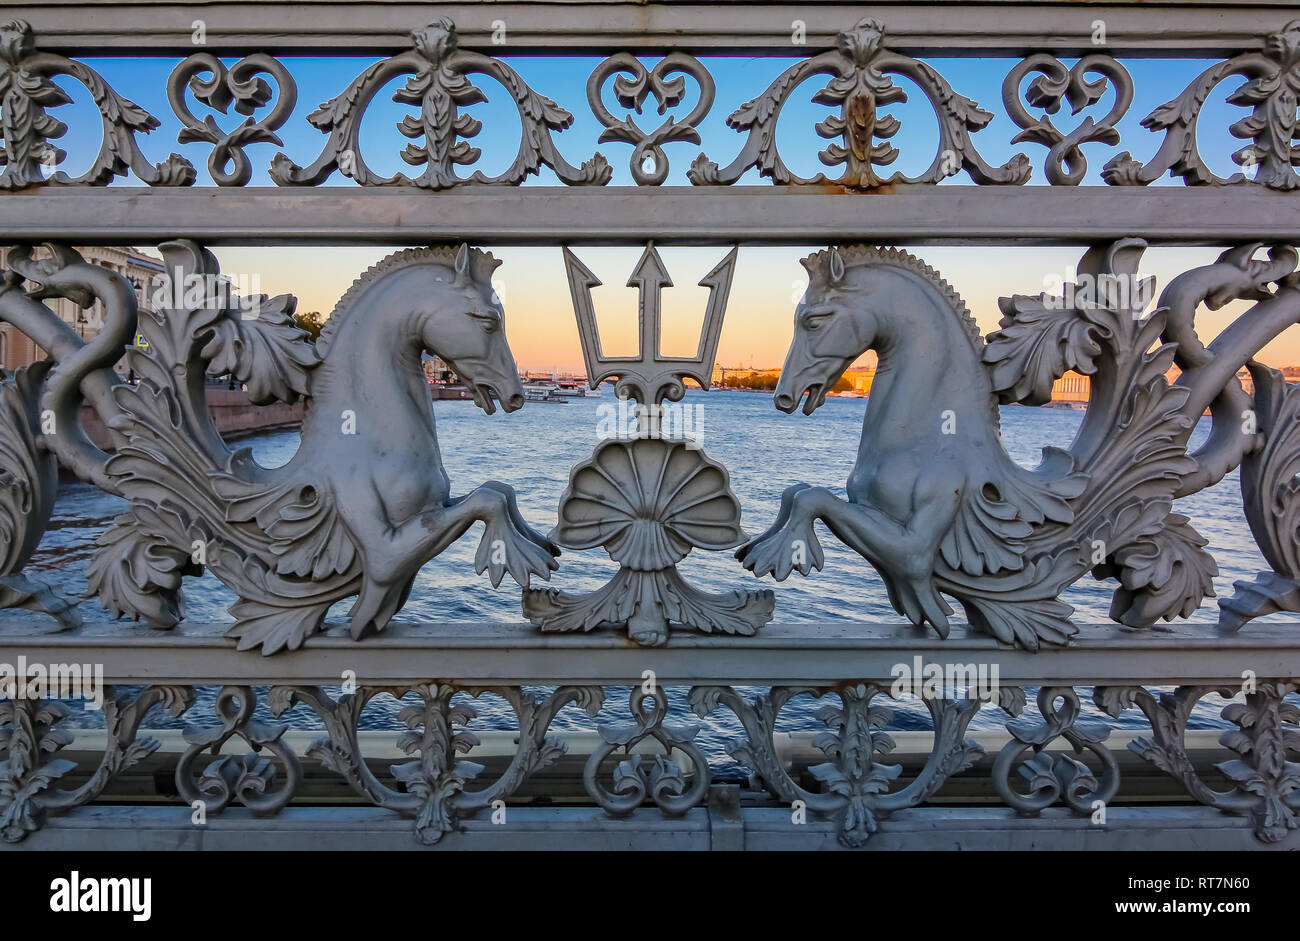 Brass Railing Stock Photos & Brass Railing Stock Images - Alamy